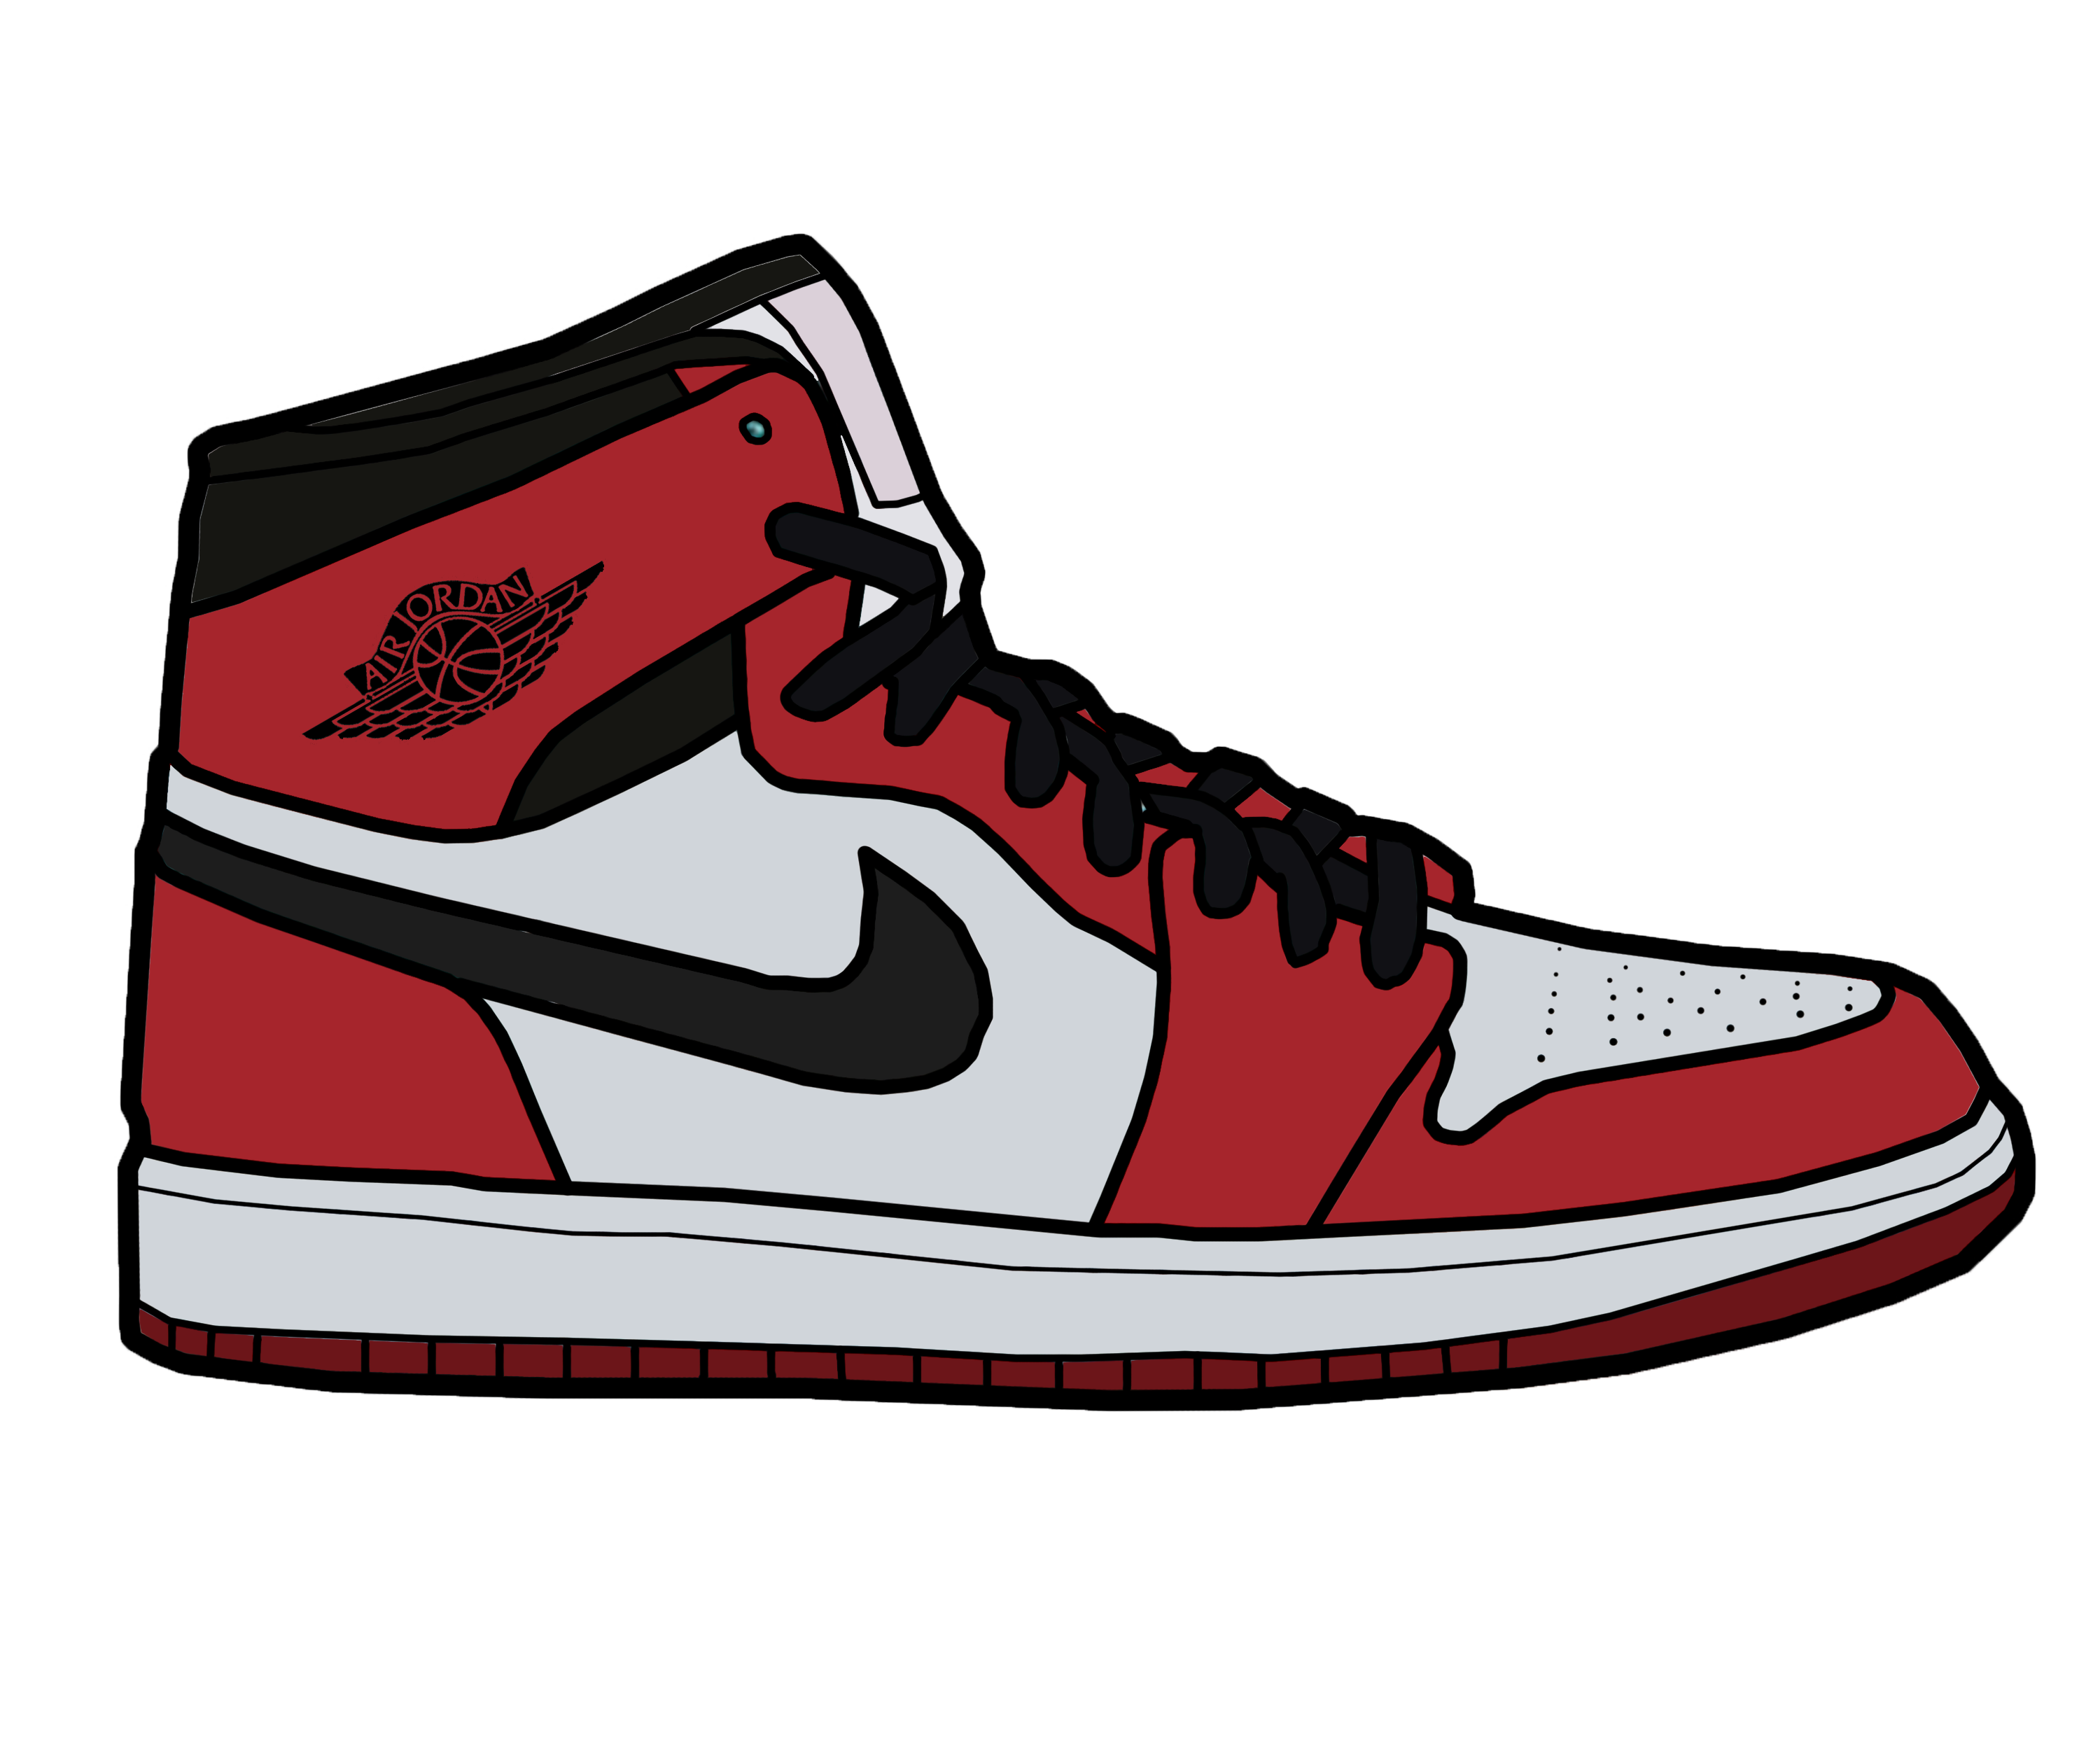 air jordan shoes drawing